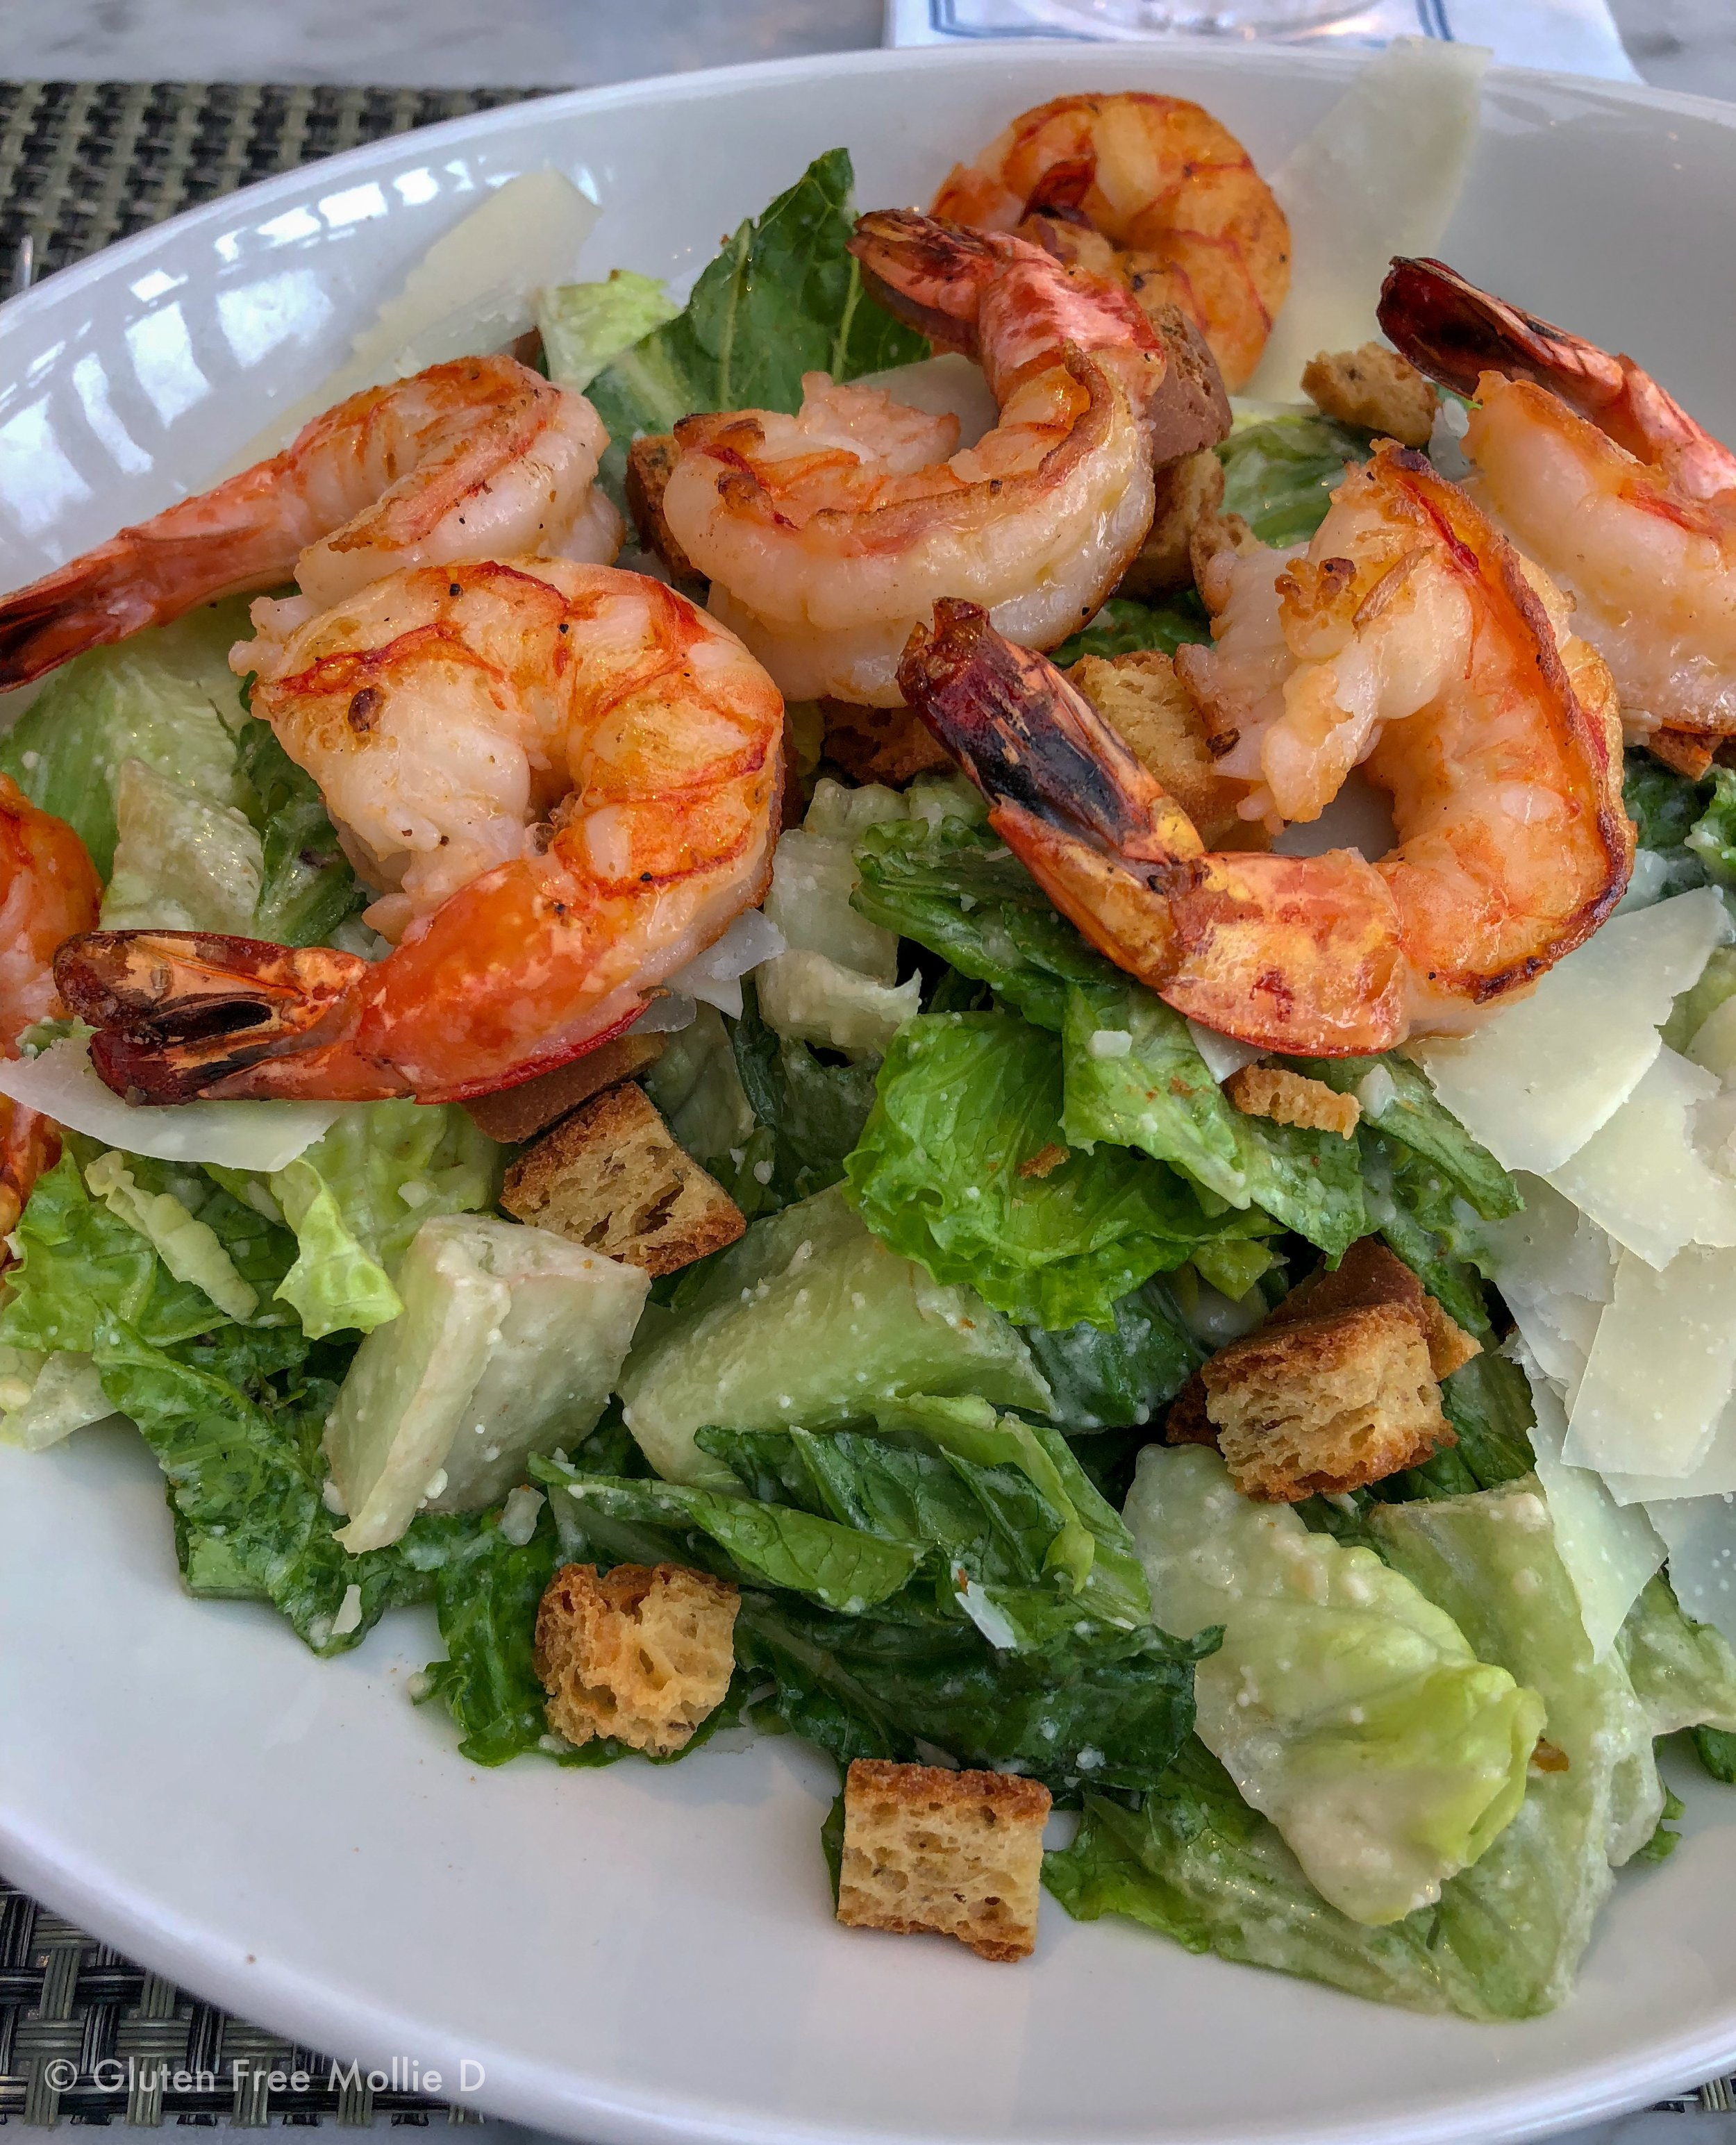 Caesar with shrimp at Legal. Always easy, delicious, and gluten free!